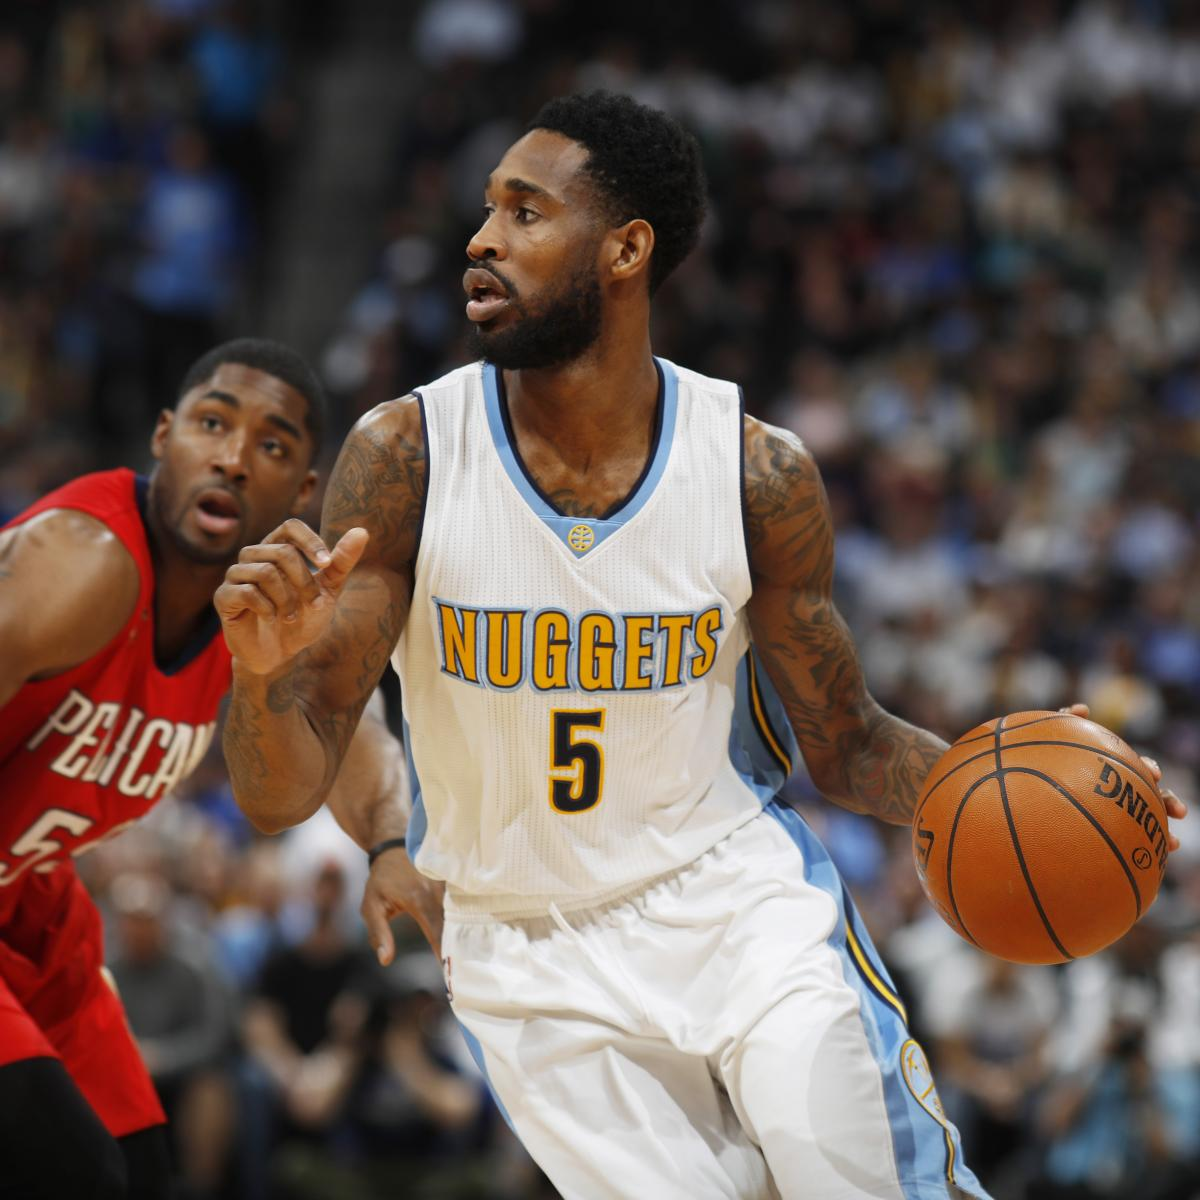 Report: Will Barton, Nuggets To Agree To 4-Year, $54M